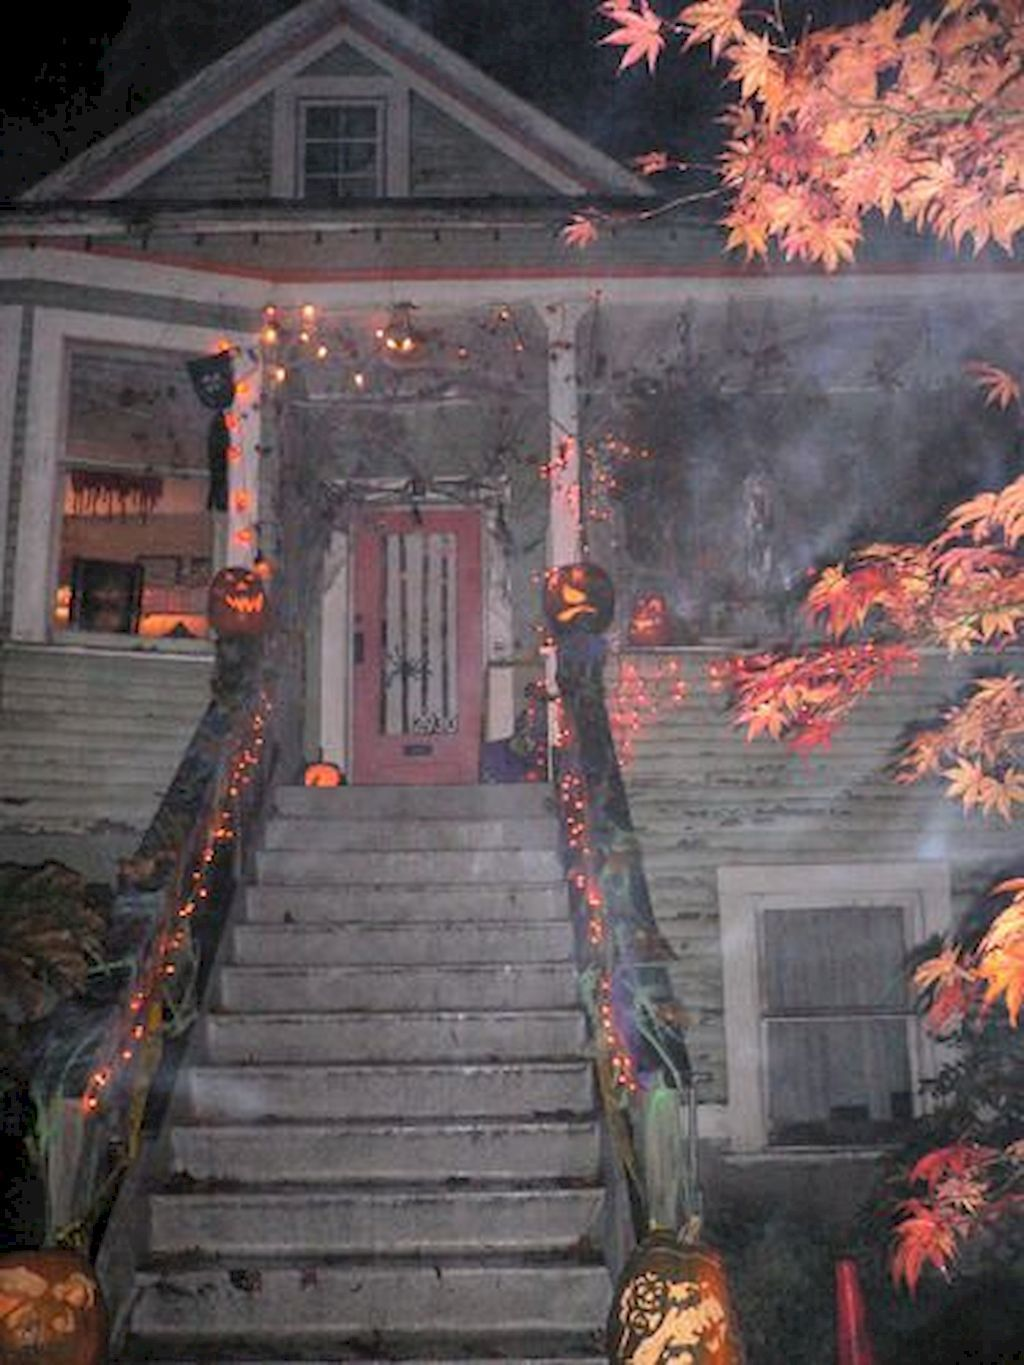 Halloween Haunted House Decorations.Pin On Home Decor